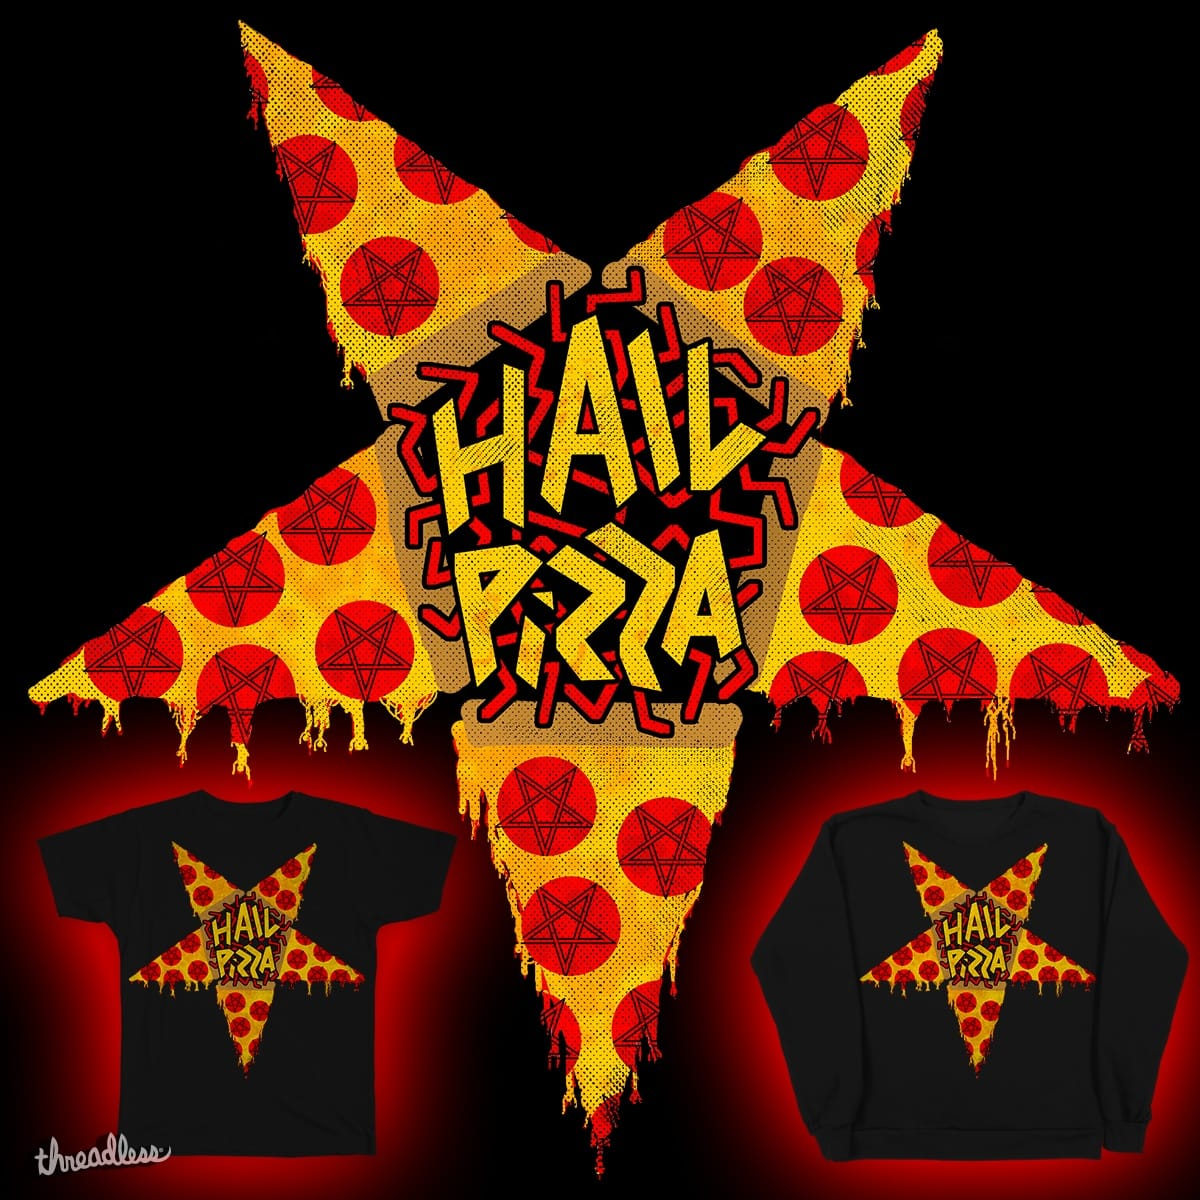 HAIL PIZZA by robotboot on Threadless